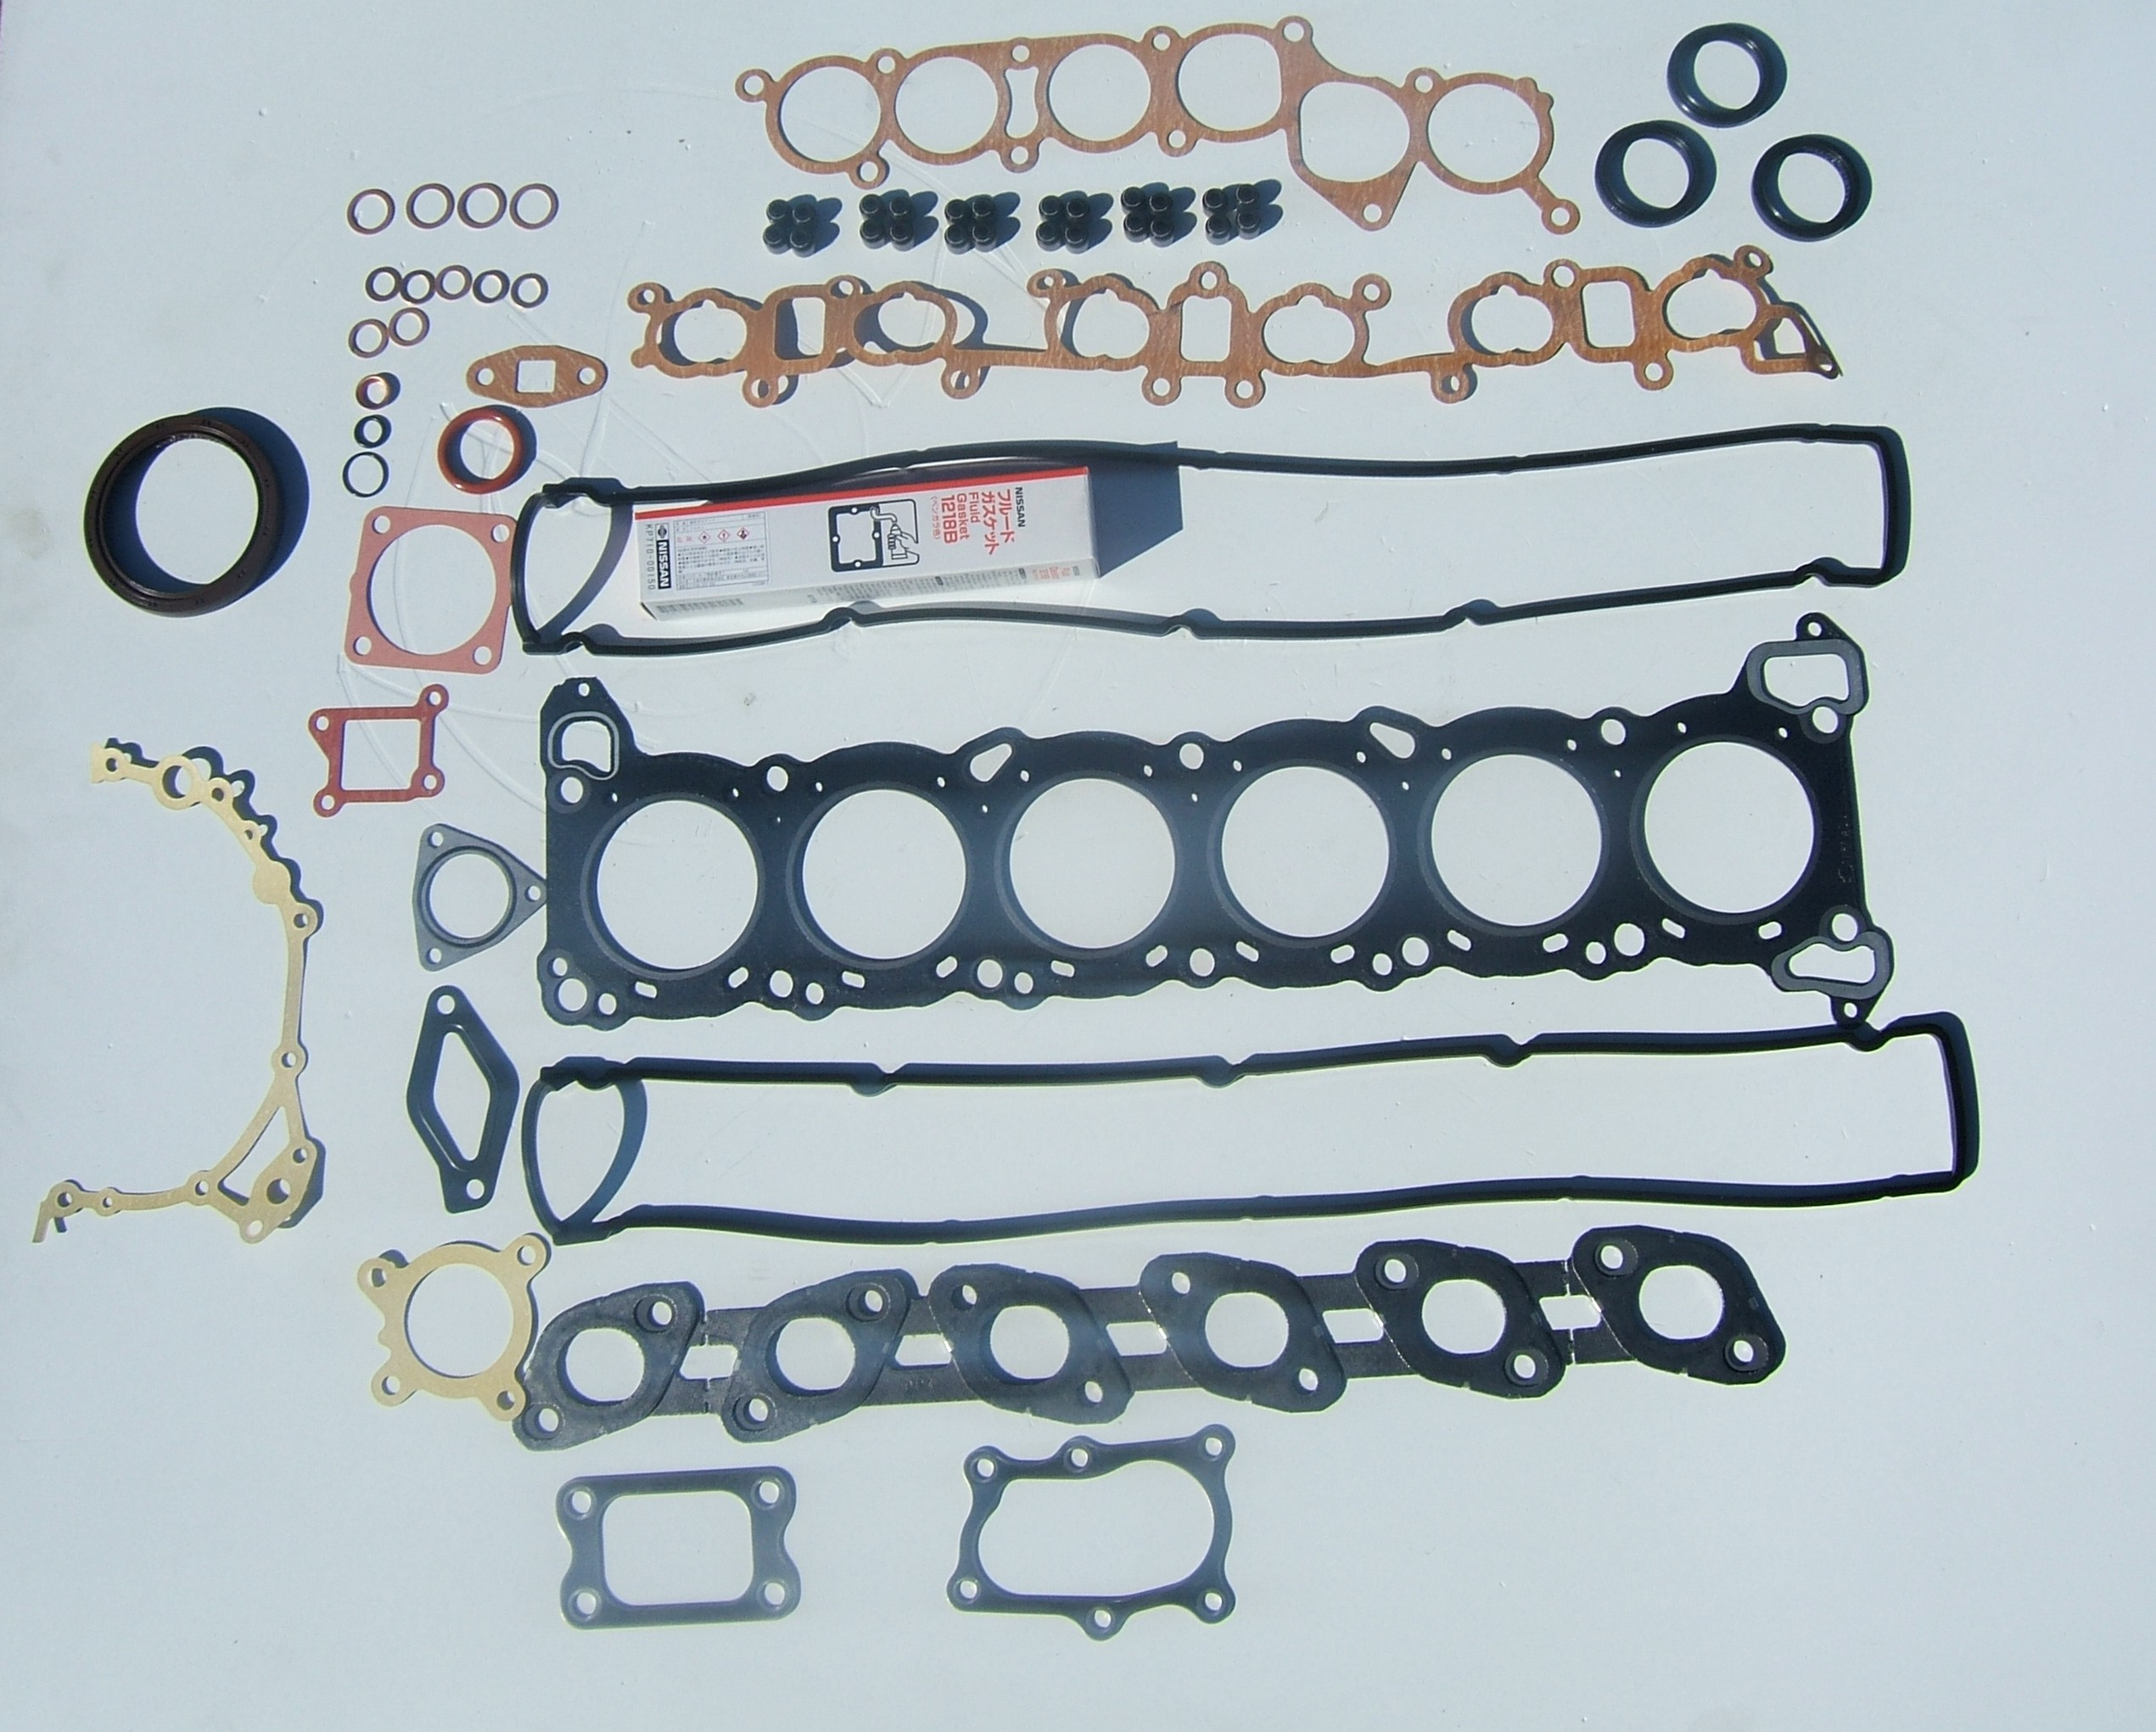 Oem Rb20det Gasket Rebuild Kit Z1 Motorsports Nissan 240sx S13 Transmission Harness Wiring Specialties New For The Rb20 This Is Recomended Ayone Who About To Swap There Motor Into S Chassis Car Replace All